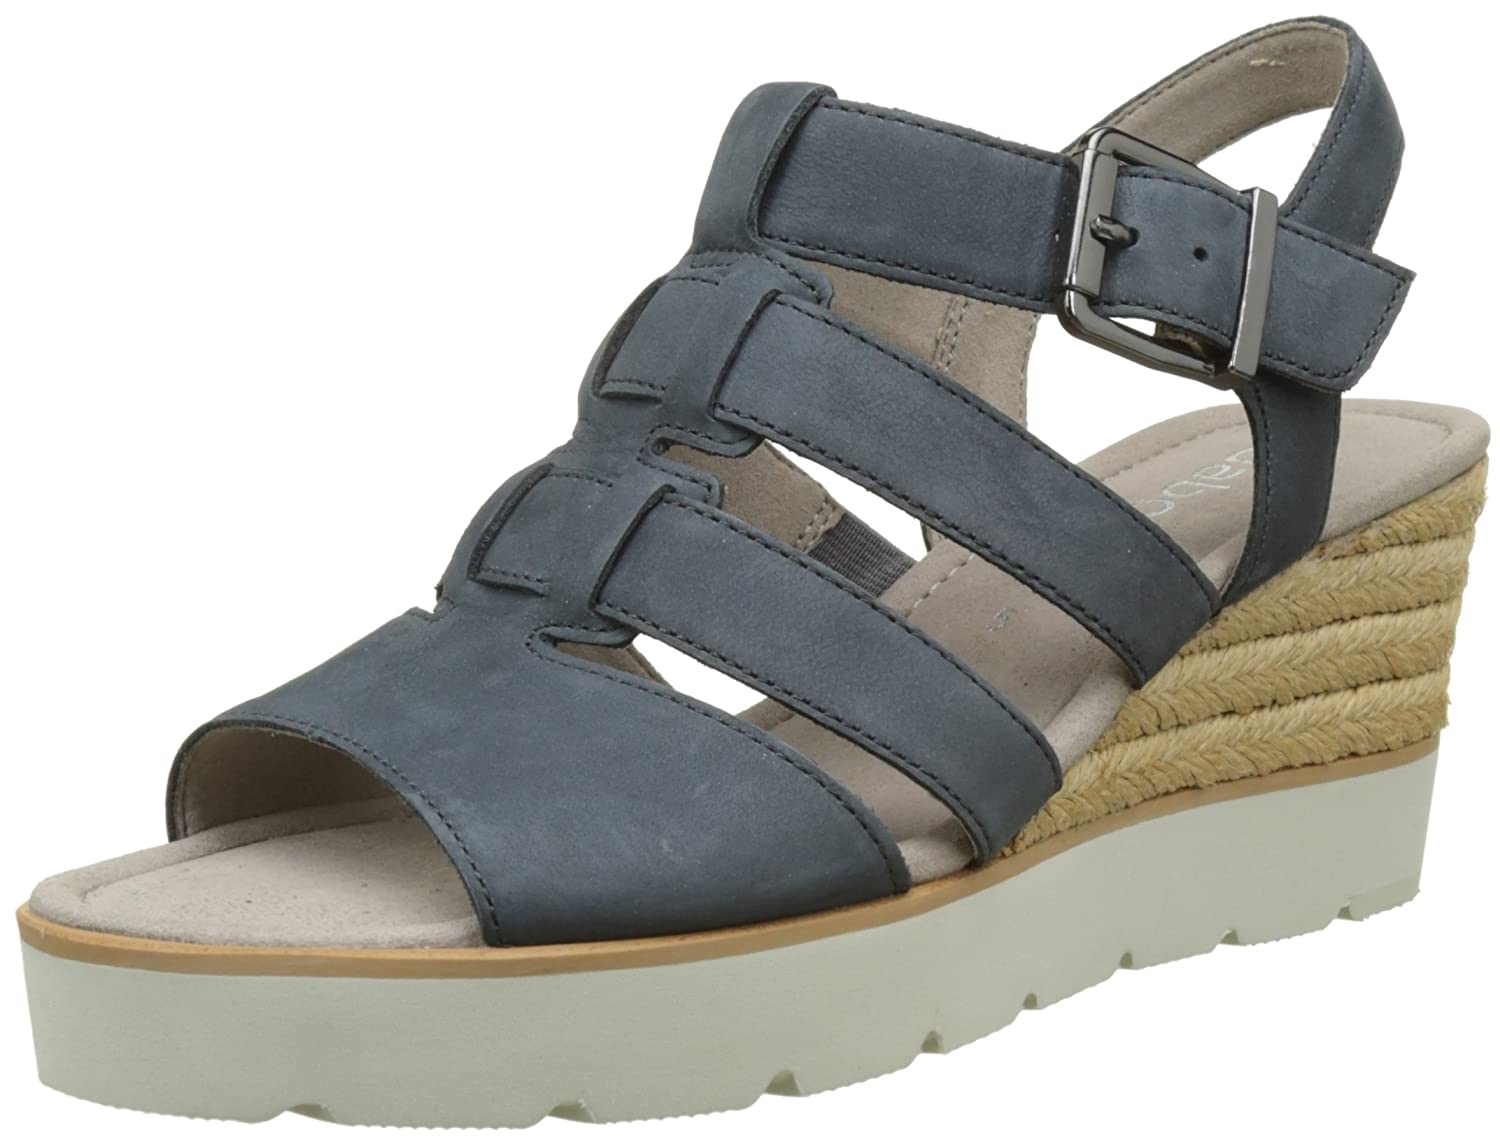 Gabor Shoes Fashion, Bout (River Sandales Bout Ouvert Femme B07HRD1X1V Bleu (River 36) 8de83b8 - piero.space